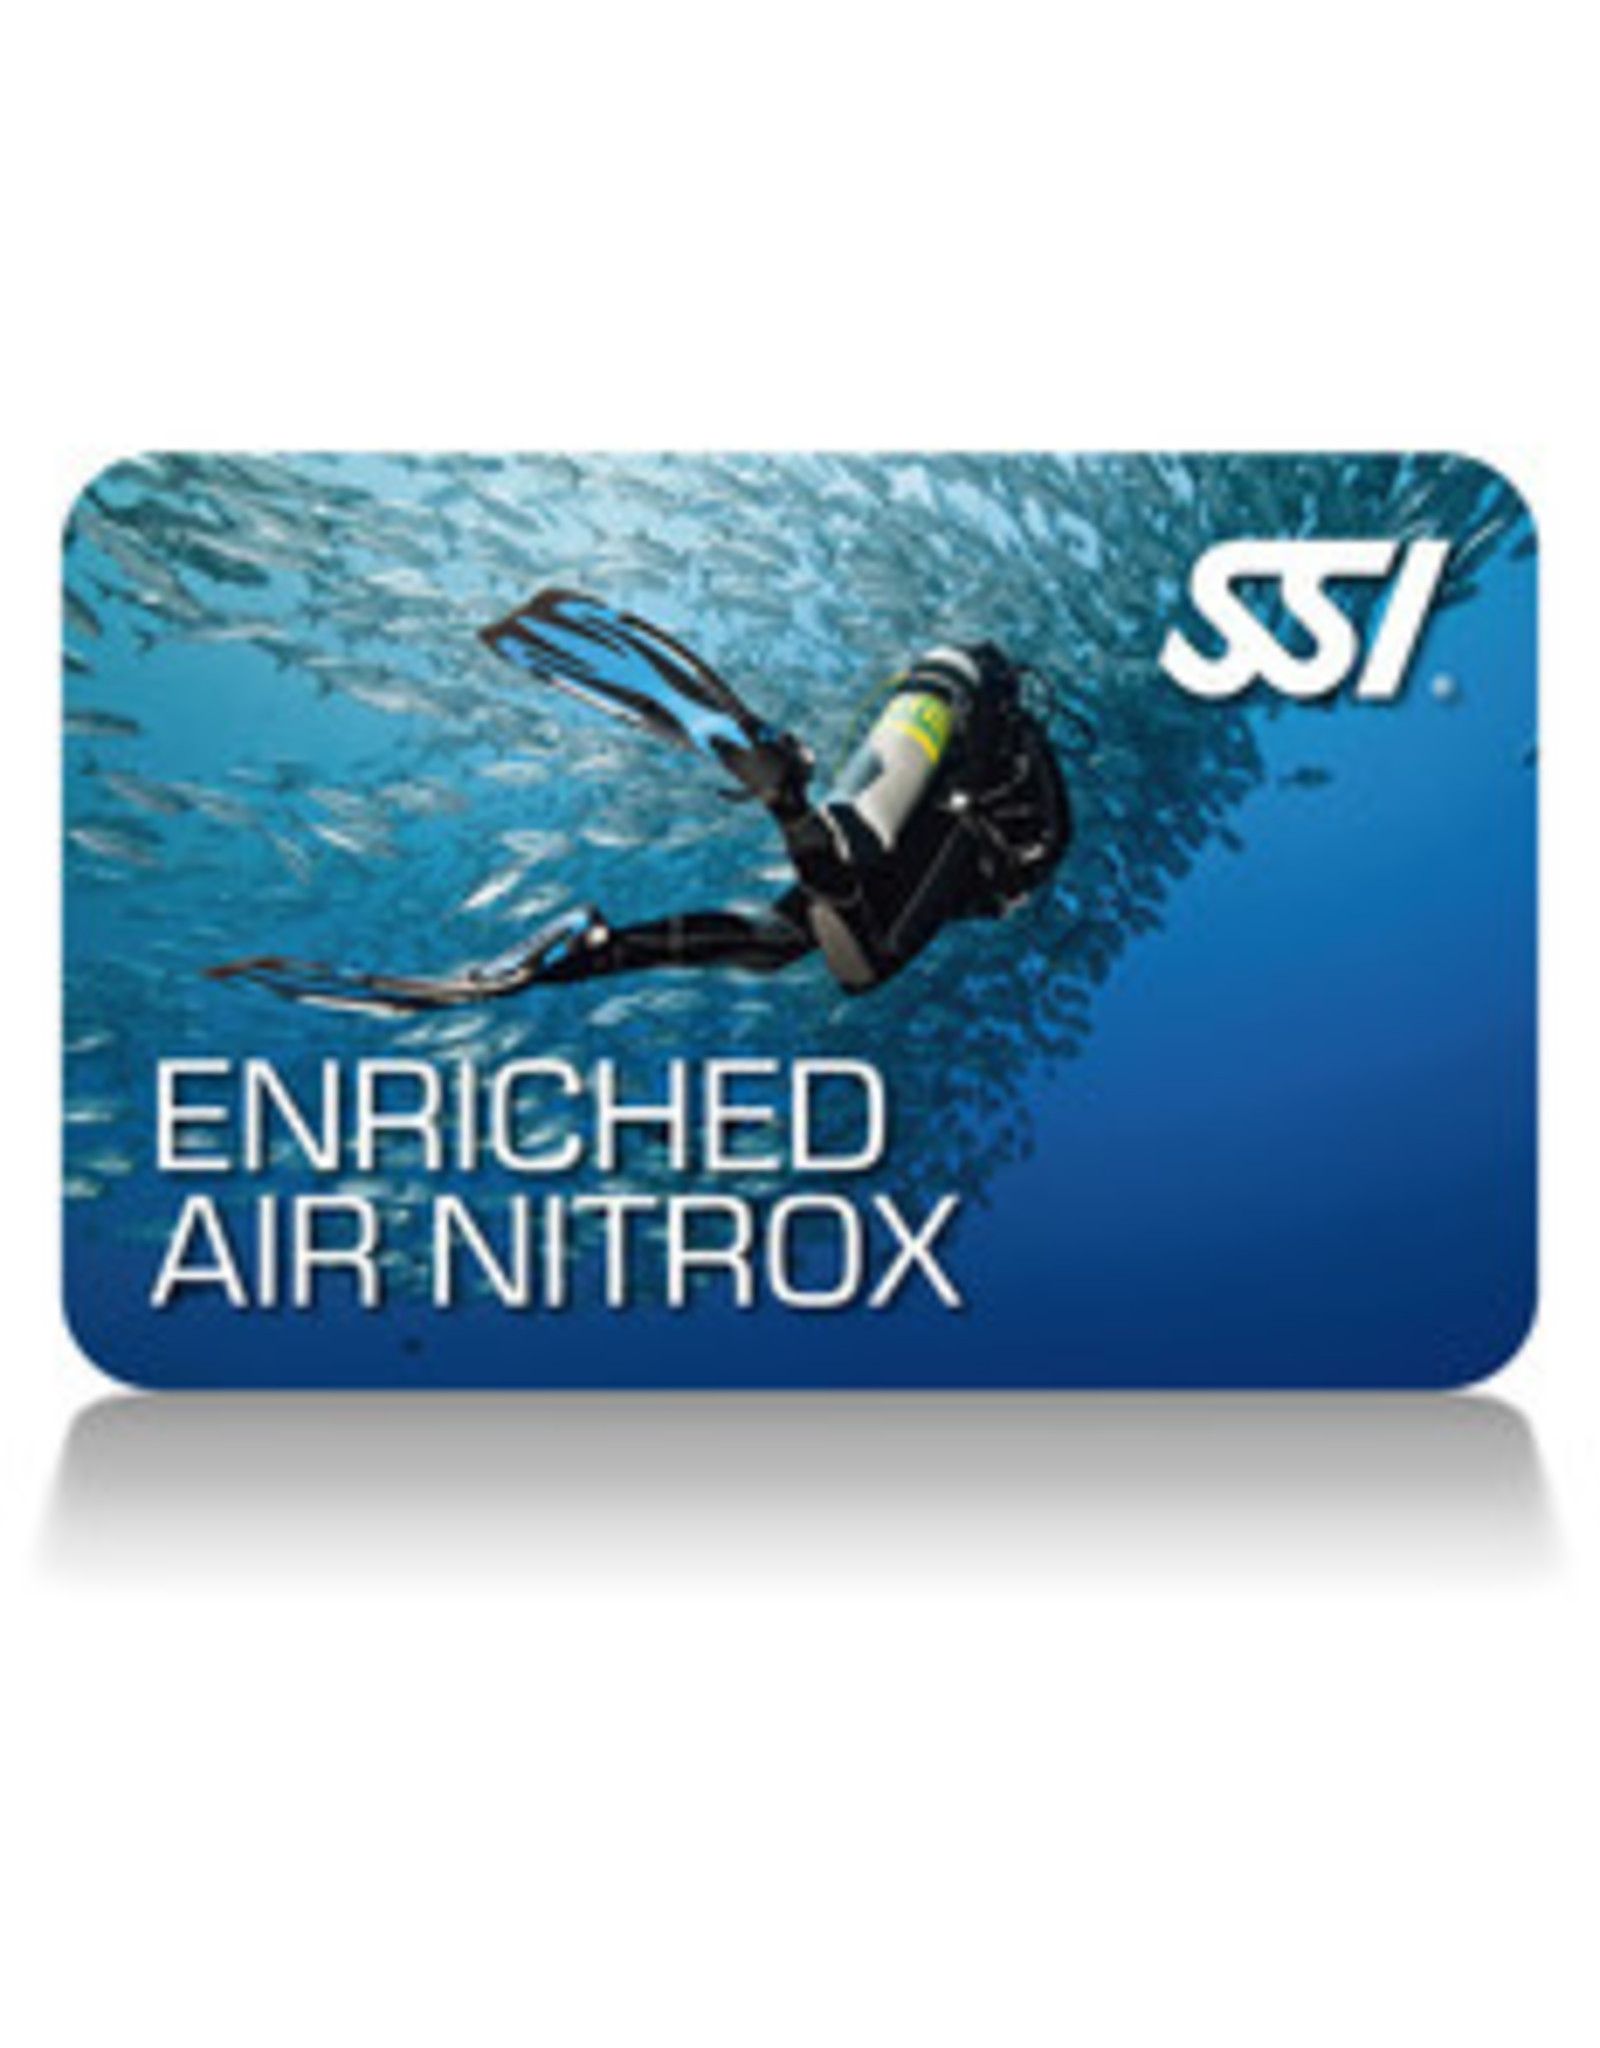 SSI SSI Enriched Air Nitrox Specialty